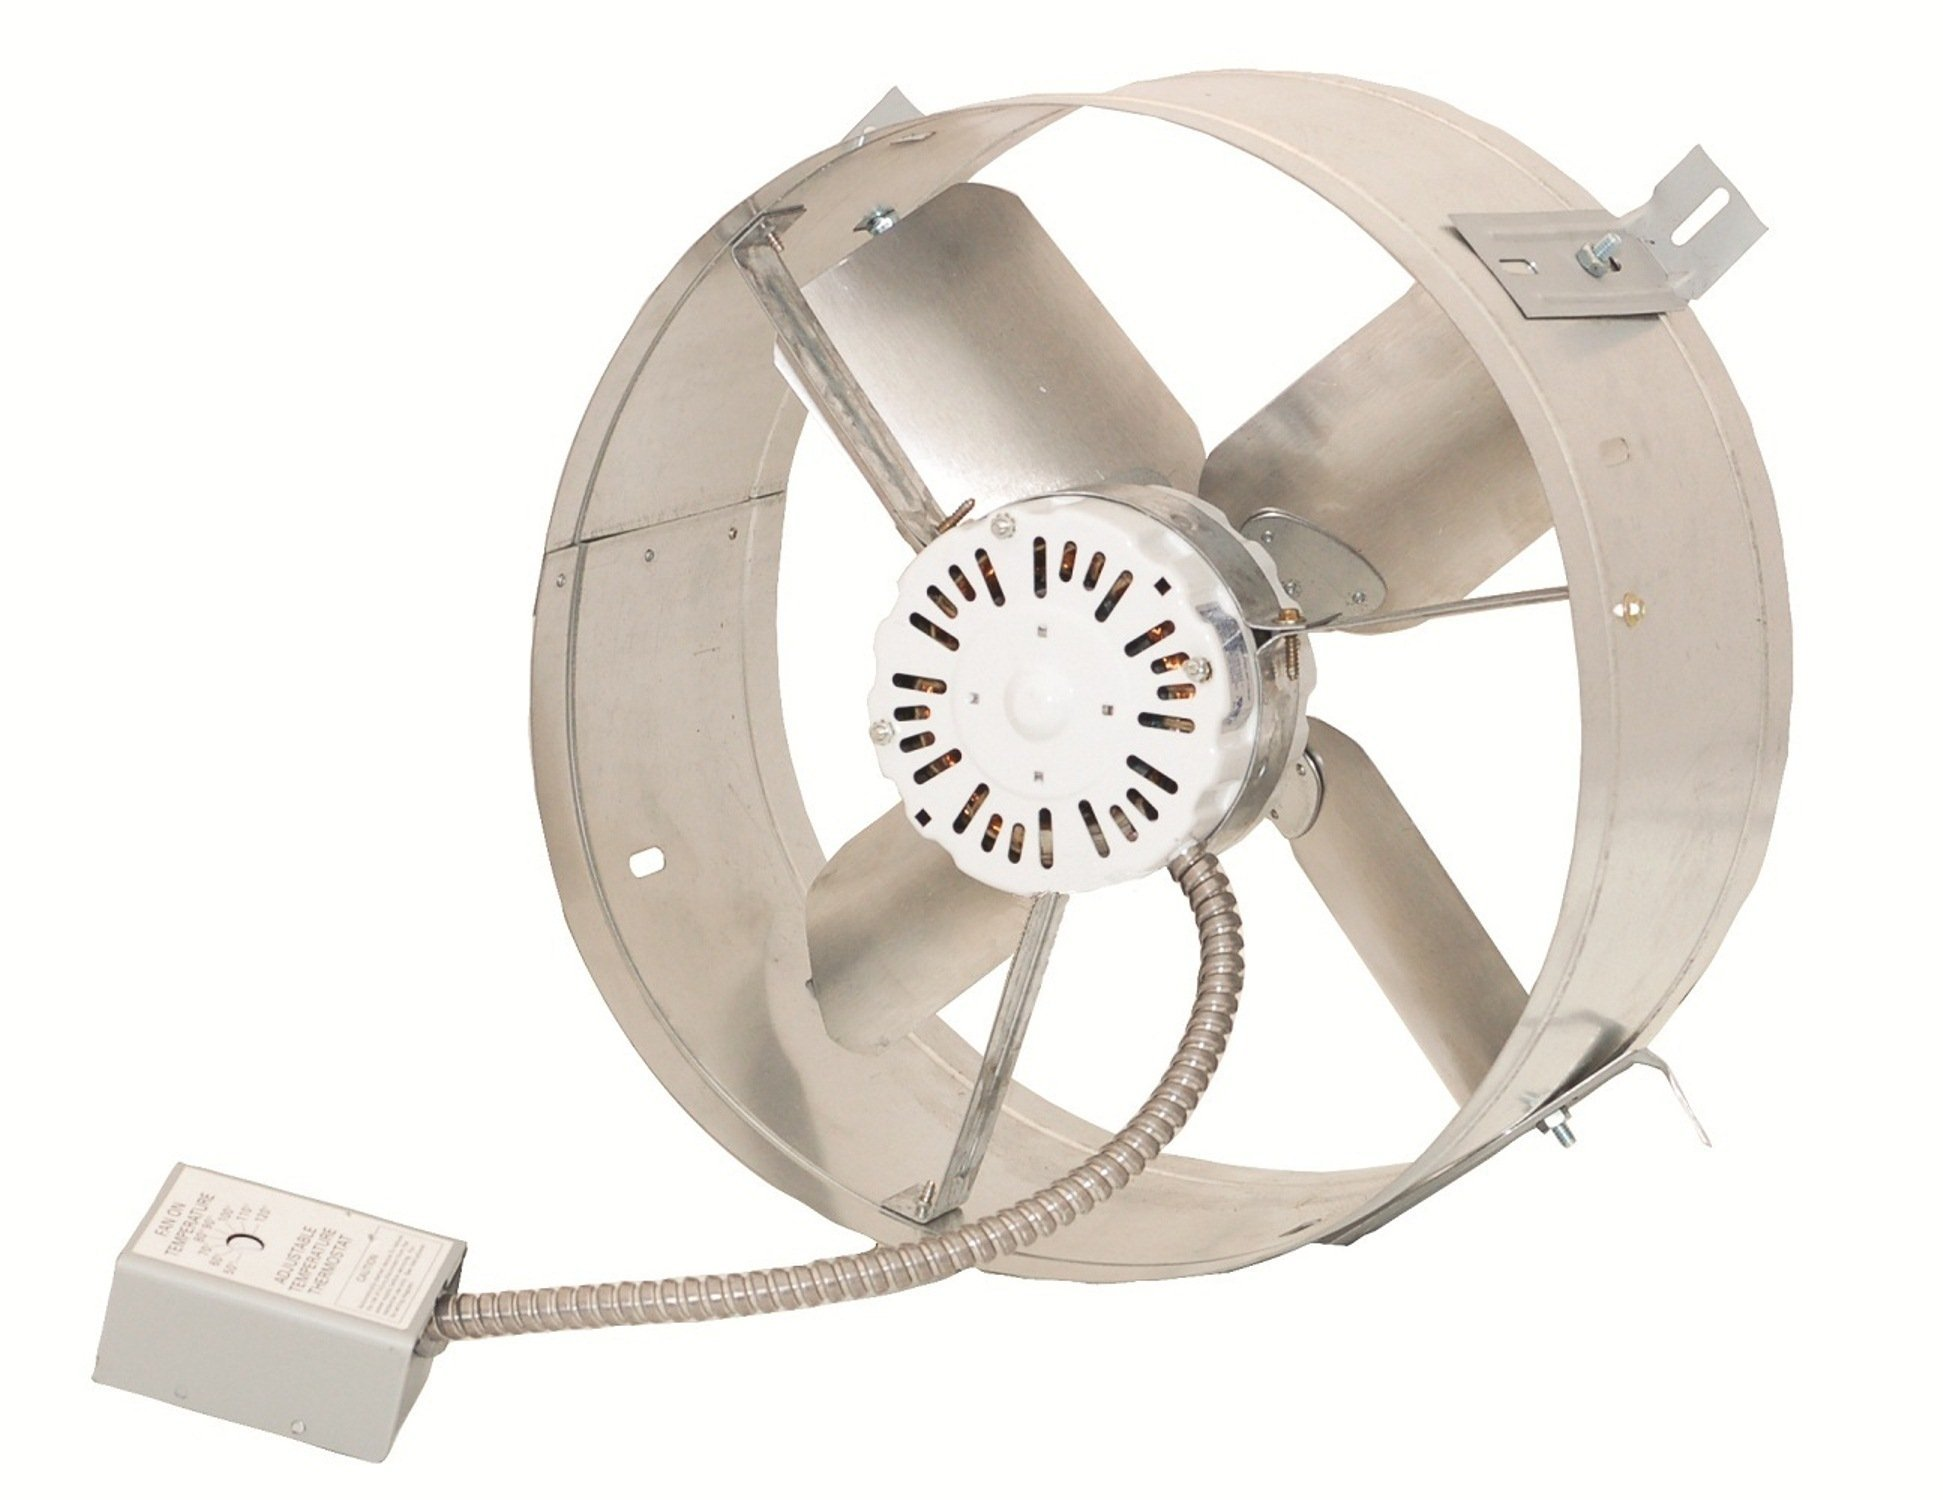 Cool Attic CX1600 Gable Mount Power Attic Ventilators with 4.5-Amp 60-Hz Motor and 14-Inch Blade